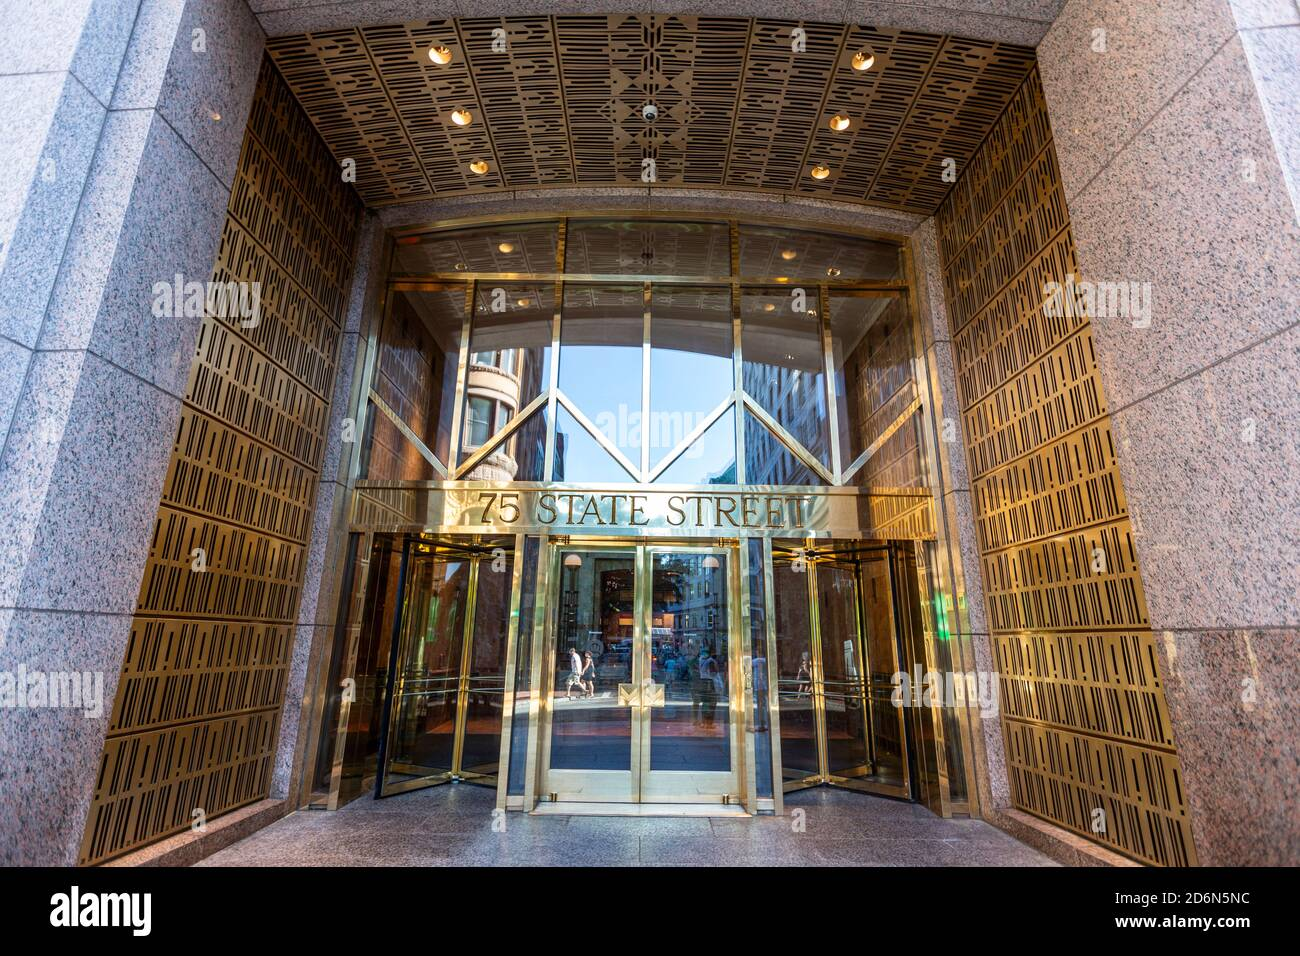 75 State Street, Downtown Boston,Financial District, Boston, Massachusetts, USA Stock Photo